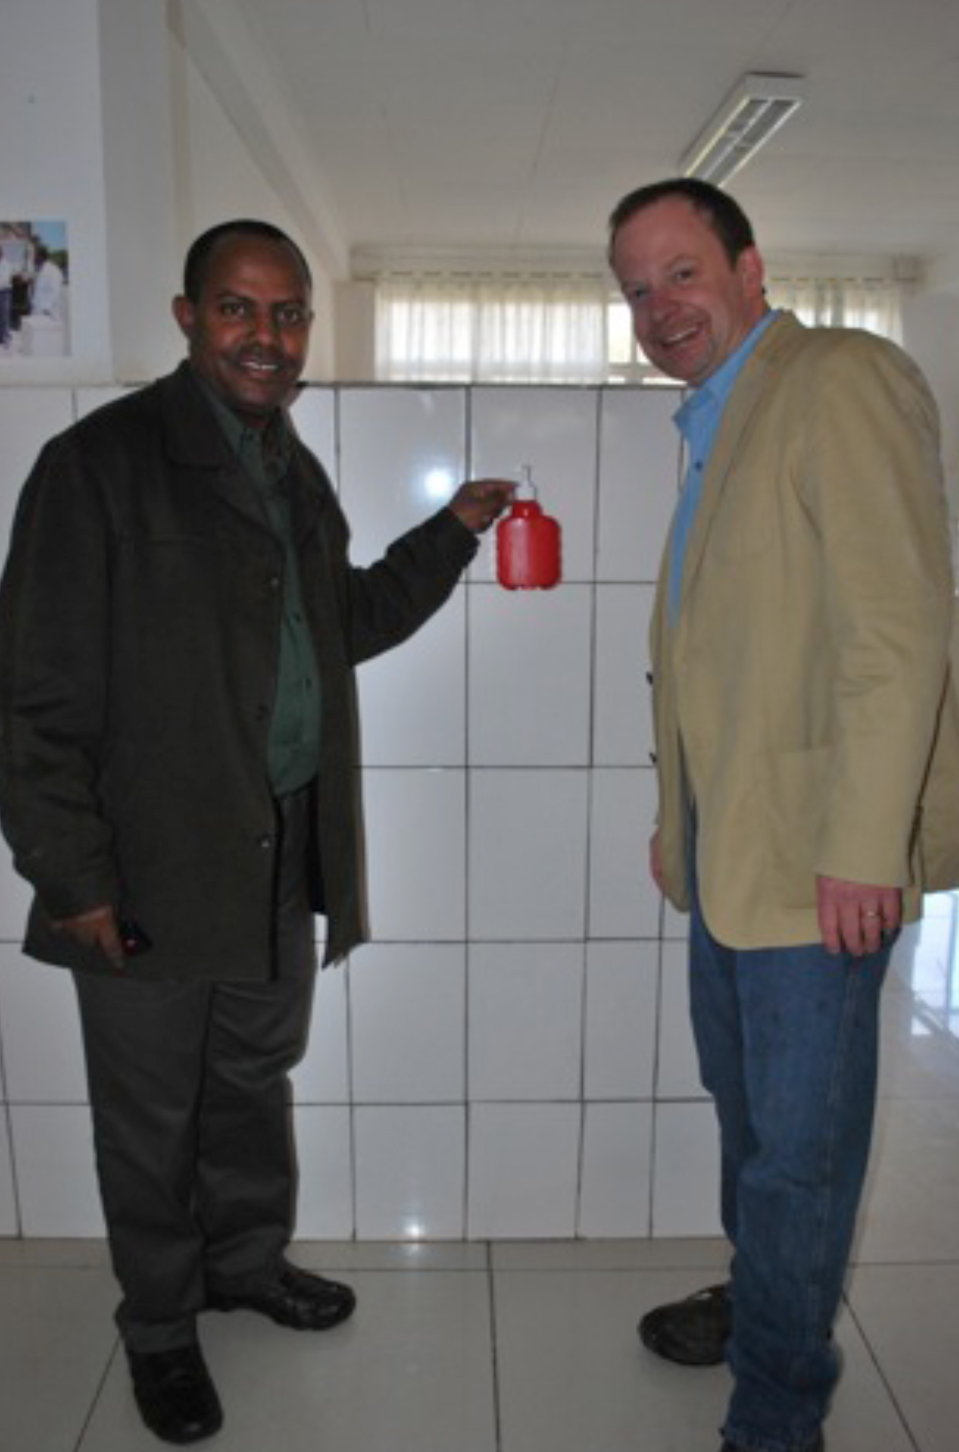 "Dr. Sisay Yifru, Dean of University of Gondar College of Medicine and Health Sciences demonstrates to me the use of a hand sanitizer dispenser on an inpatient unit at the University of Gondar Hospital.   These dispensers are manufactured at a local plastics factory.  The dispenser location and design demonstrate local adaptation of international ""best practices"" for hand hygiene in health care facilities, including placing hand sanitizer at the ""point of care.""  This technology was developed and deployed in cooperation with the Patient Safety Initiative, World Health Organization, but has been sustained by administrative support and leadership of the University of Gondar."